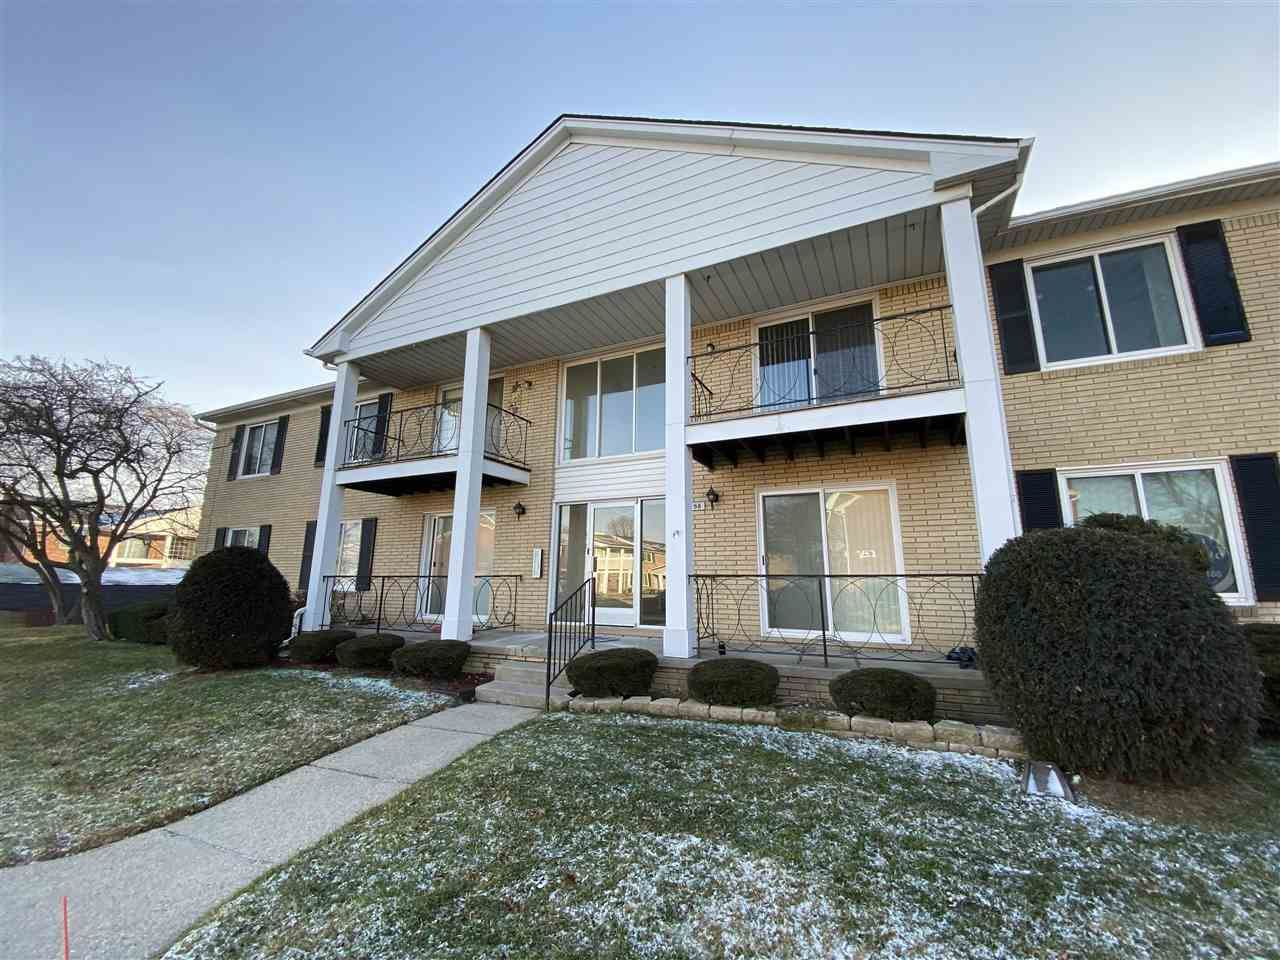 Photo of 37098 Camelot, Sterling Heights, MI 48312 (MLS # 50003807)